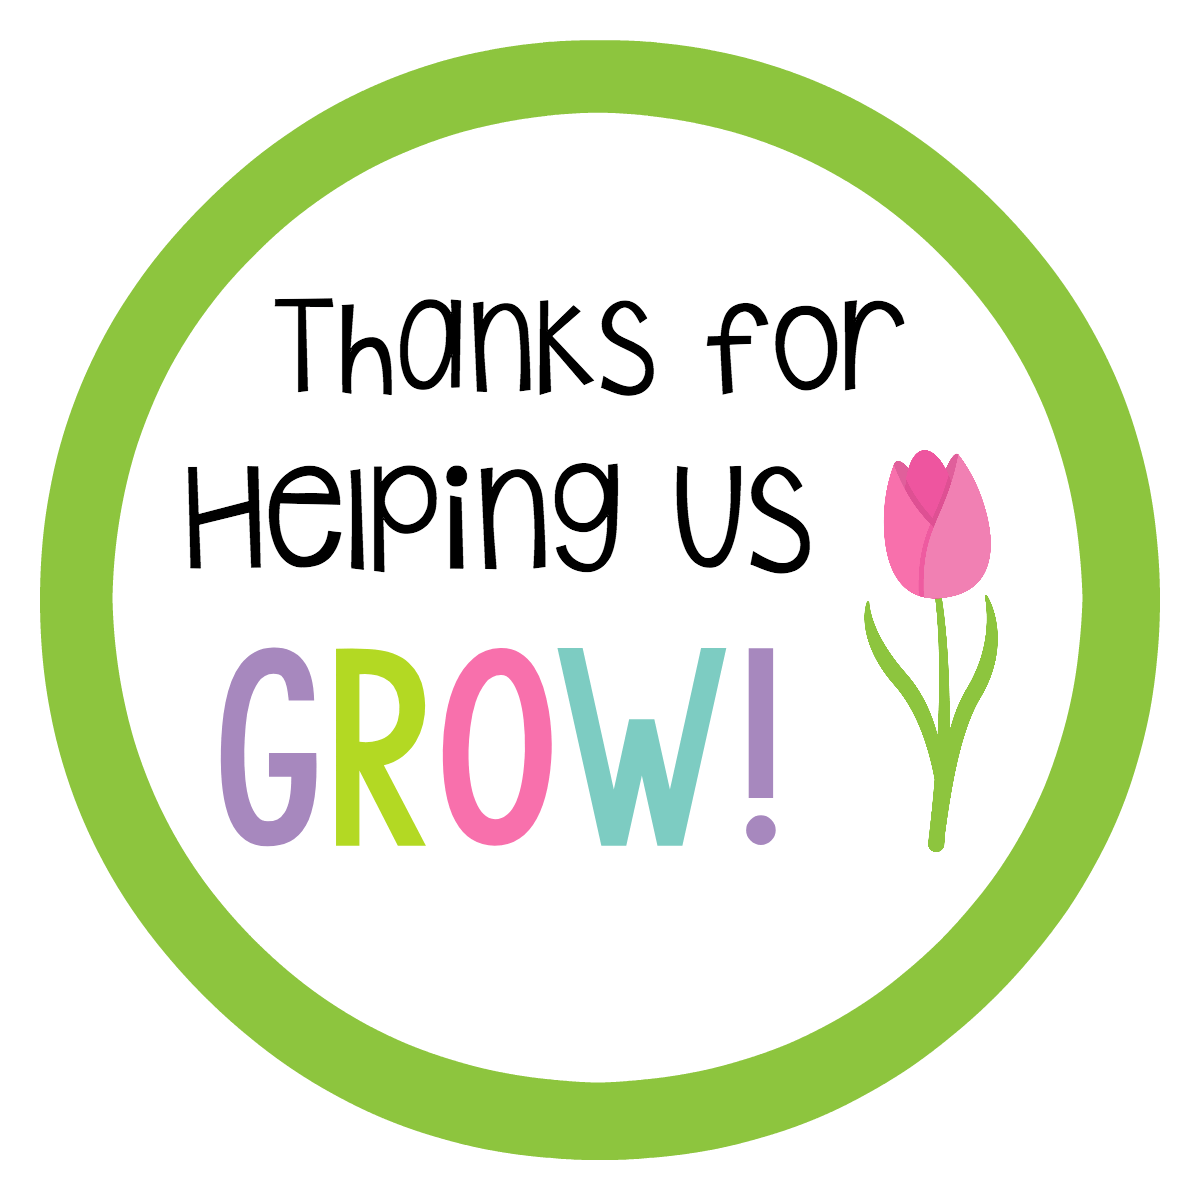 Thanks for Helping Us Grow Teacher Appreciation Tag